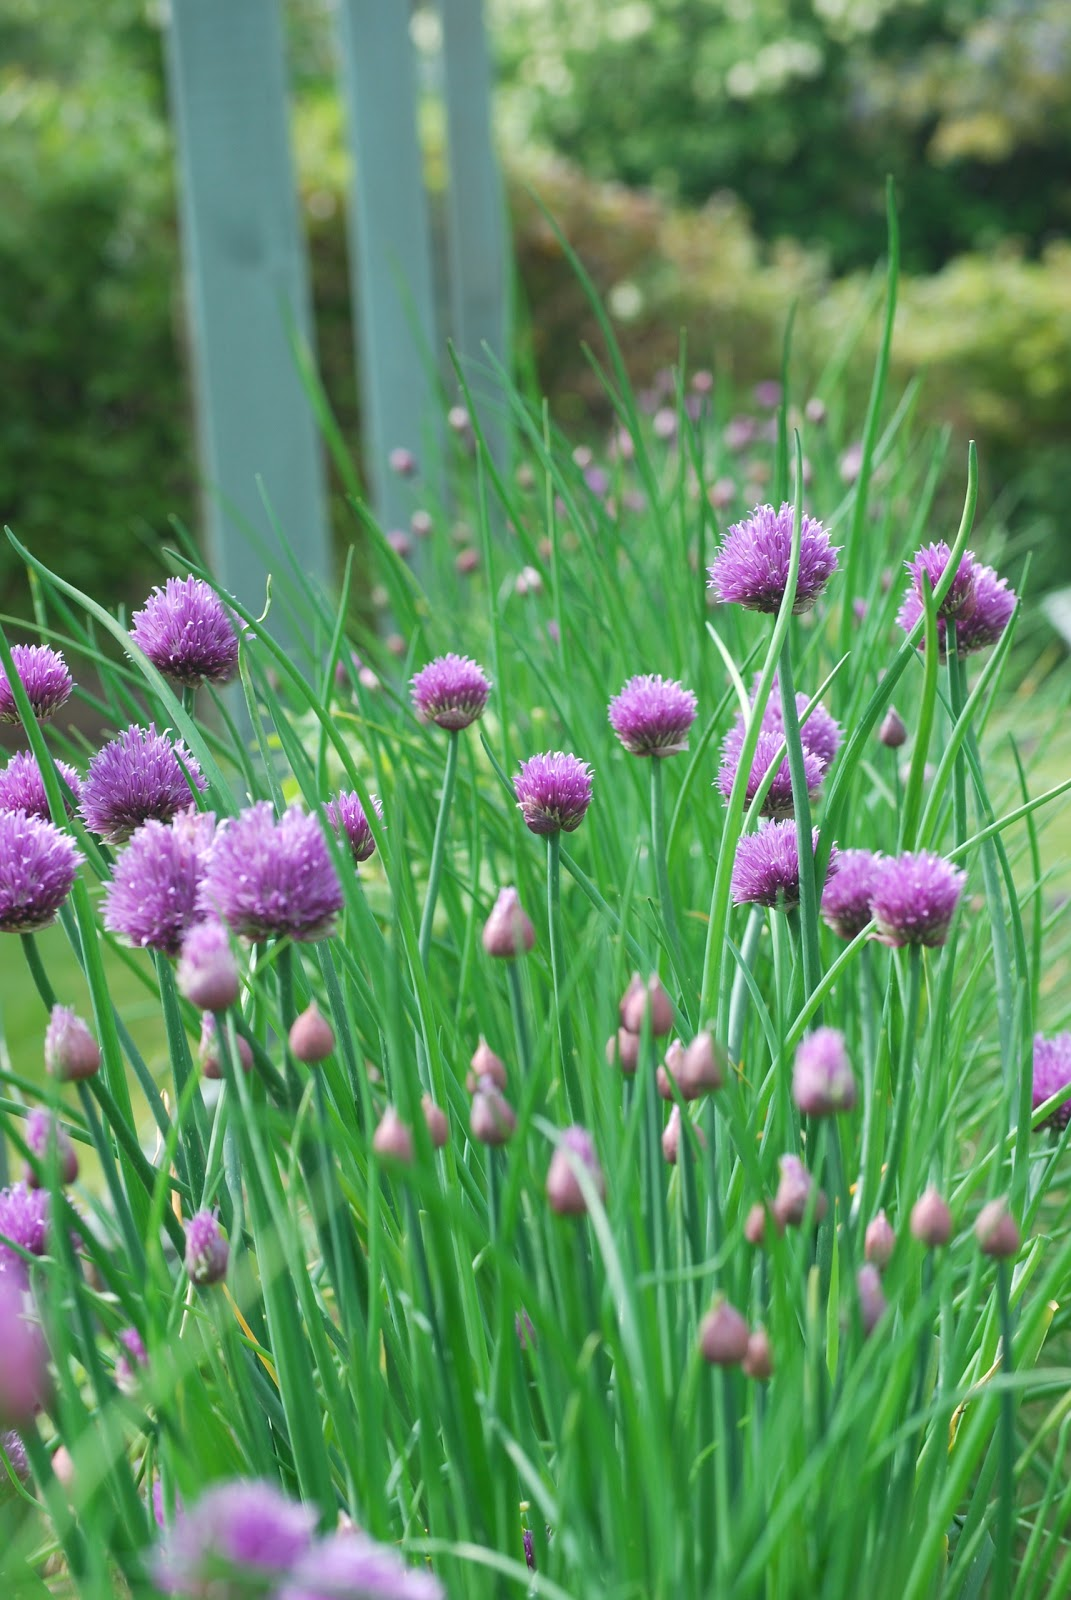 Clare Matthews' Garden Blog: Free Chive Edging Is Looking